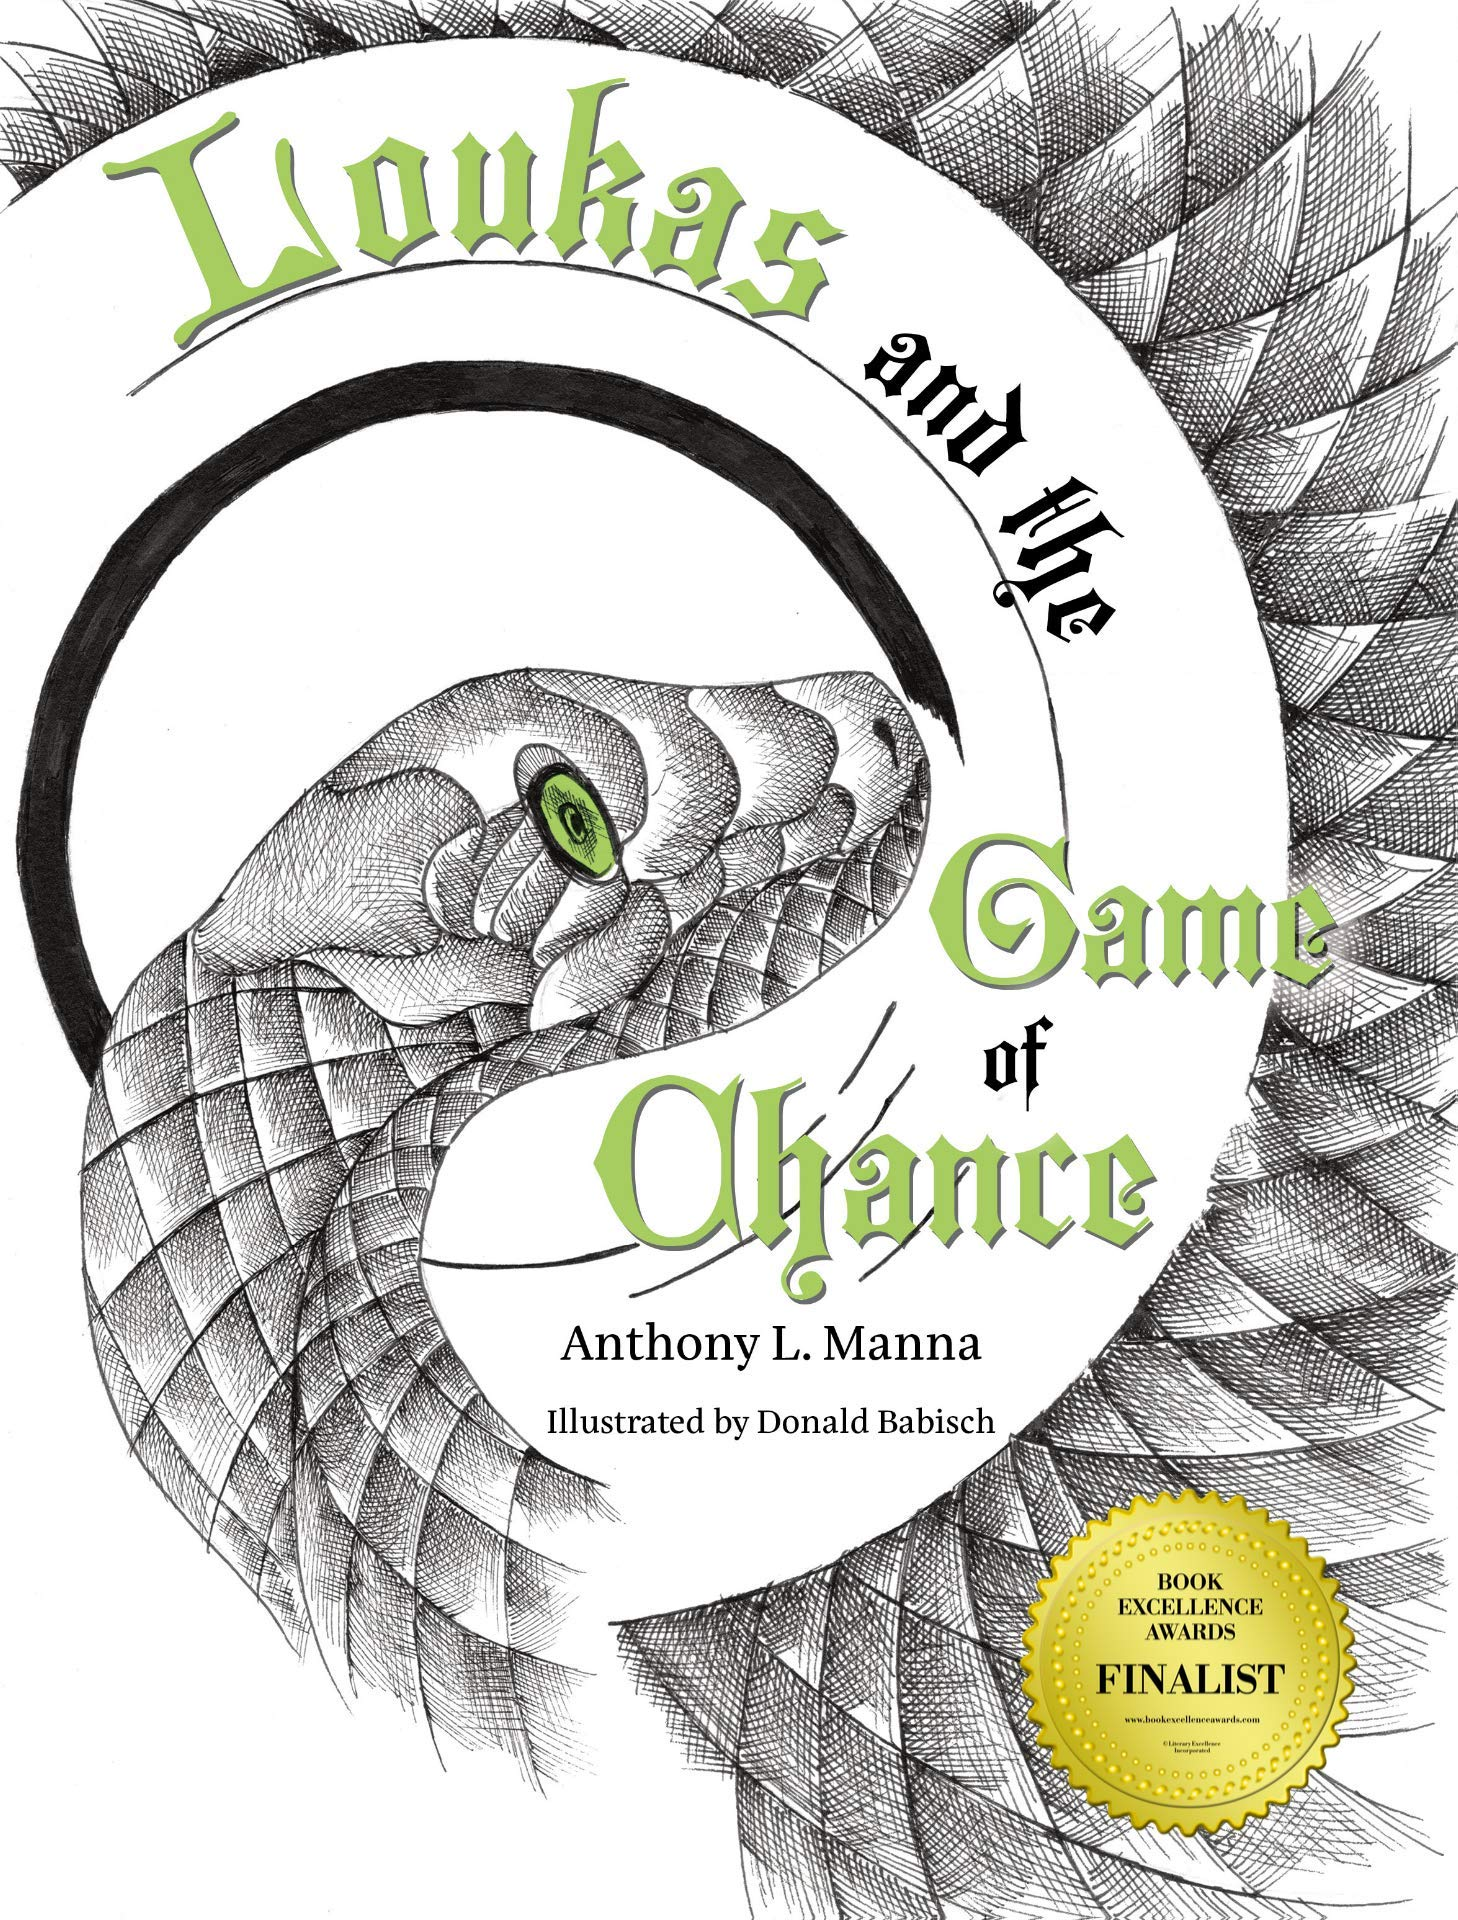 Amazon.com: Loukas and the Game of Chance (9781684014330): Anthony L.  Manna, Donald Babisch, Donald Babisch: Books